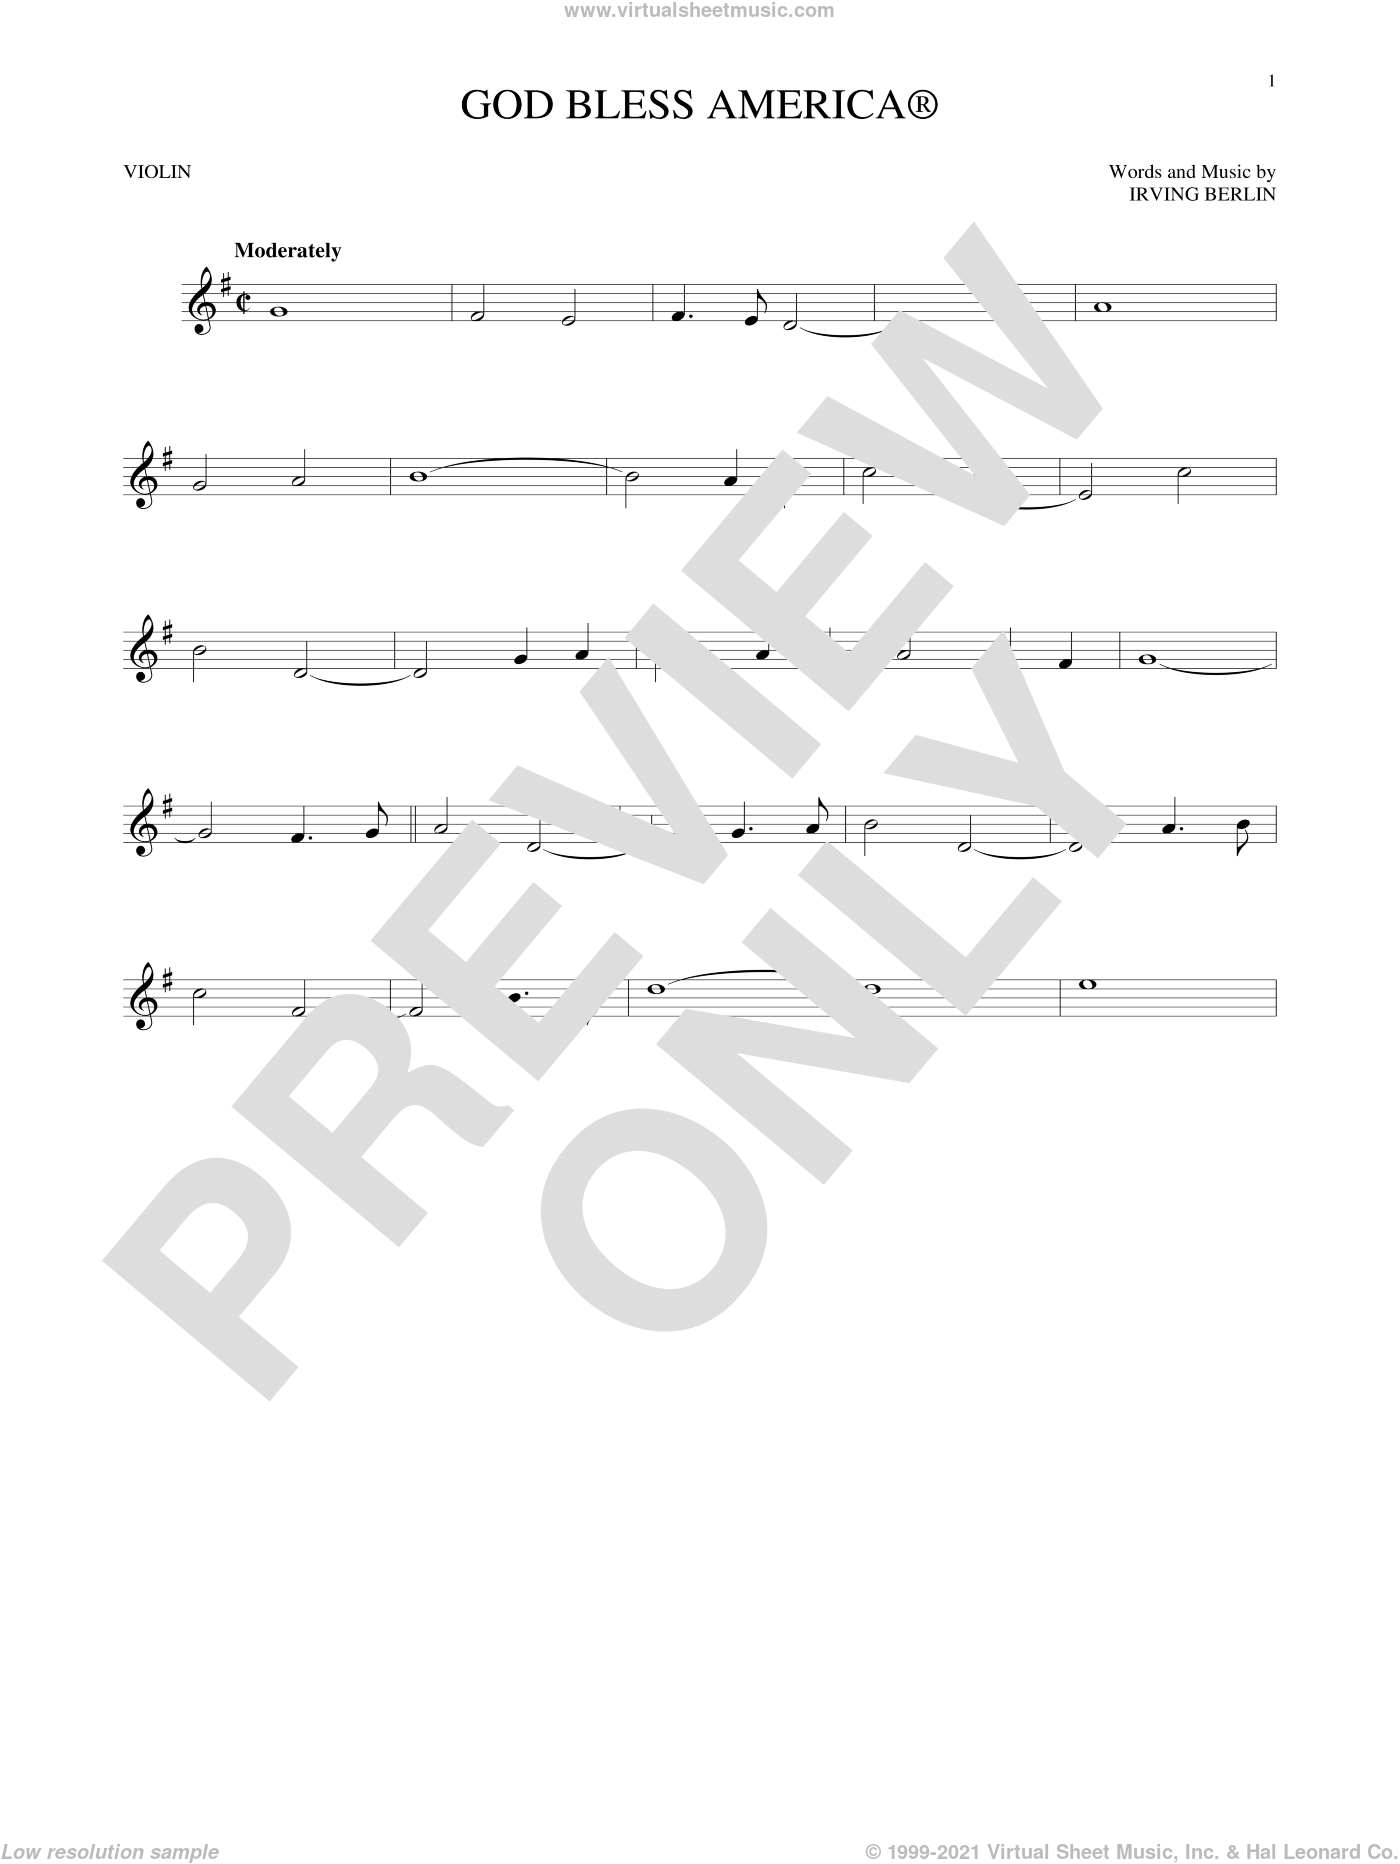 God Bless AmericaA sheet music for violin solo by Irving Berlin, intermediate skill level